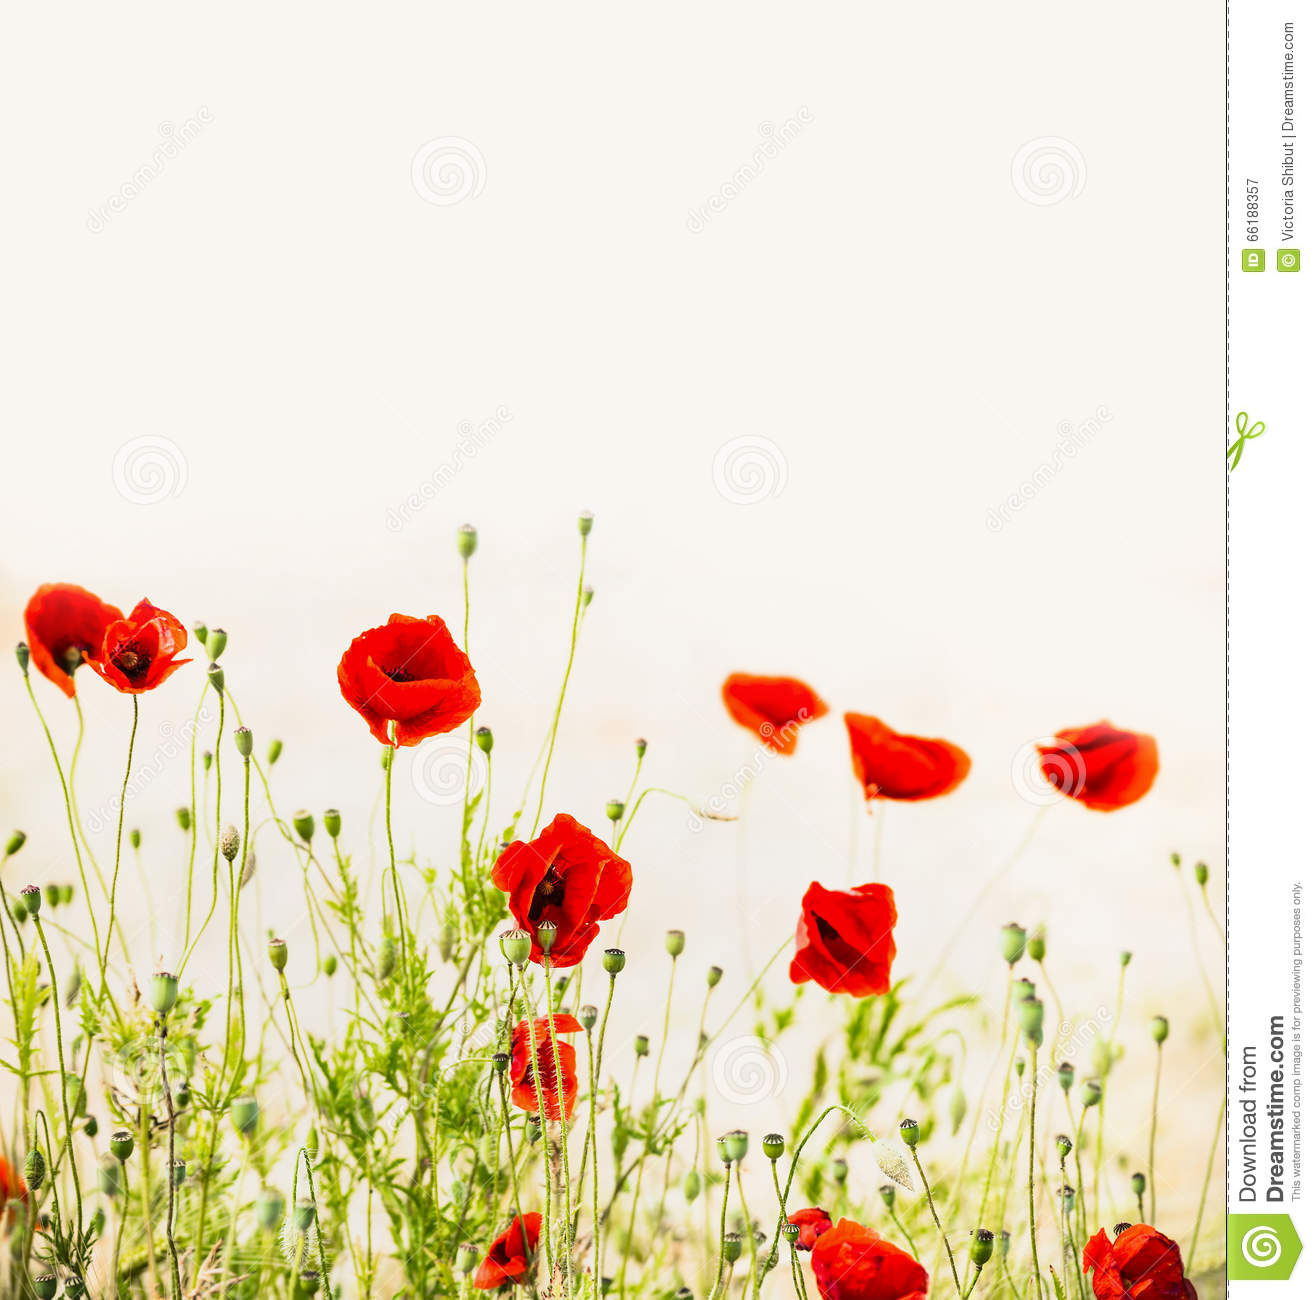 Red Poppies Outdoor Floral Nature Background Stock Image Image Of